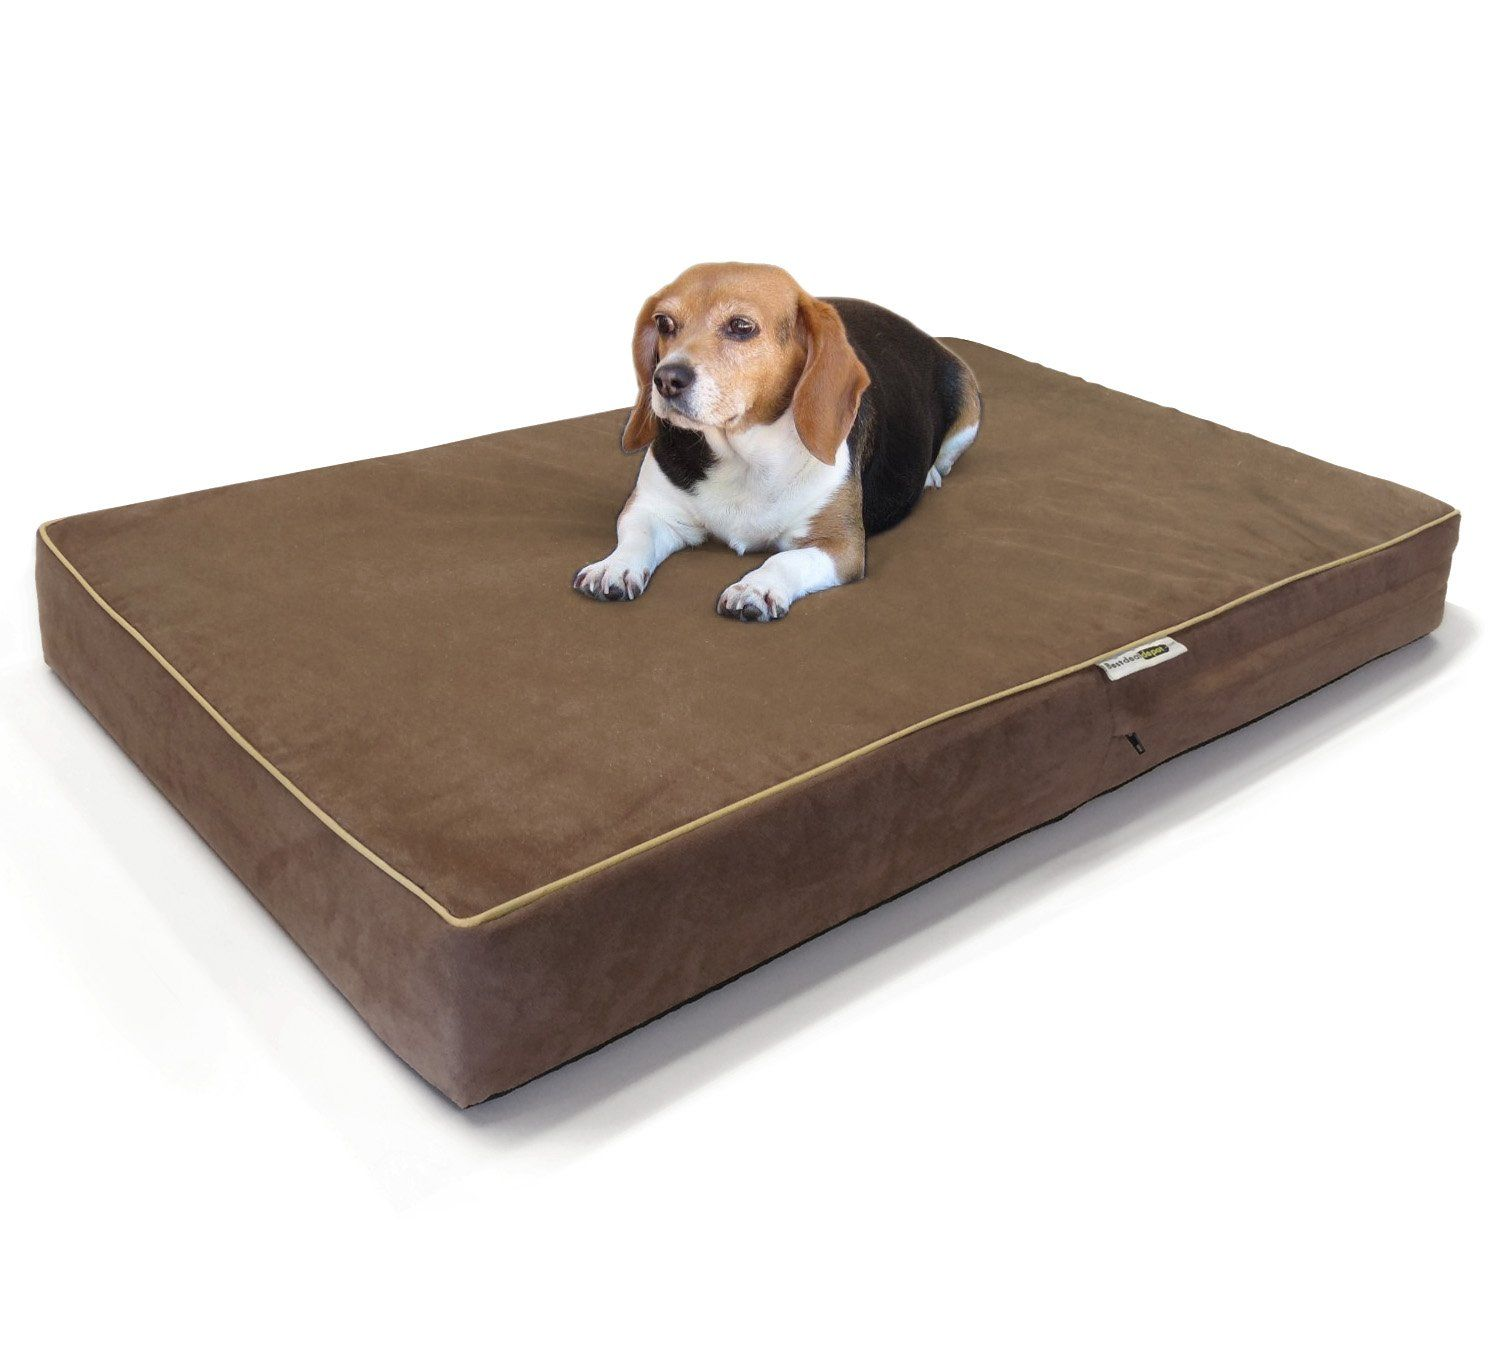 licious bedroom dog fresh on petco bed diy best bedding beds sale right orthopedic small of big large